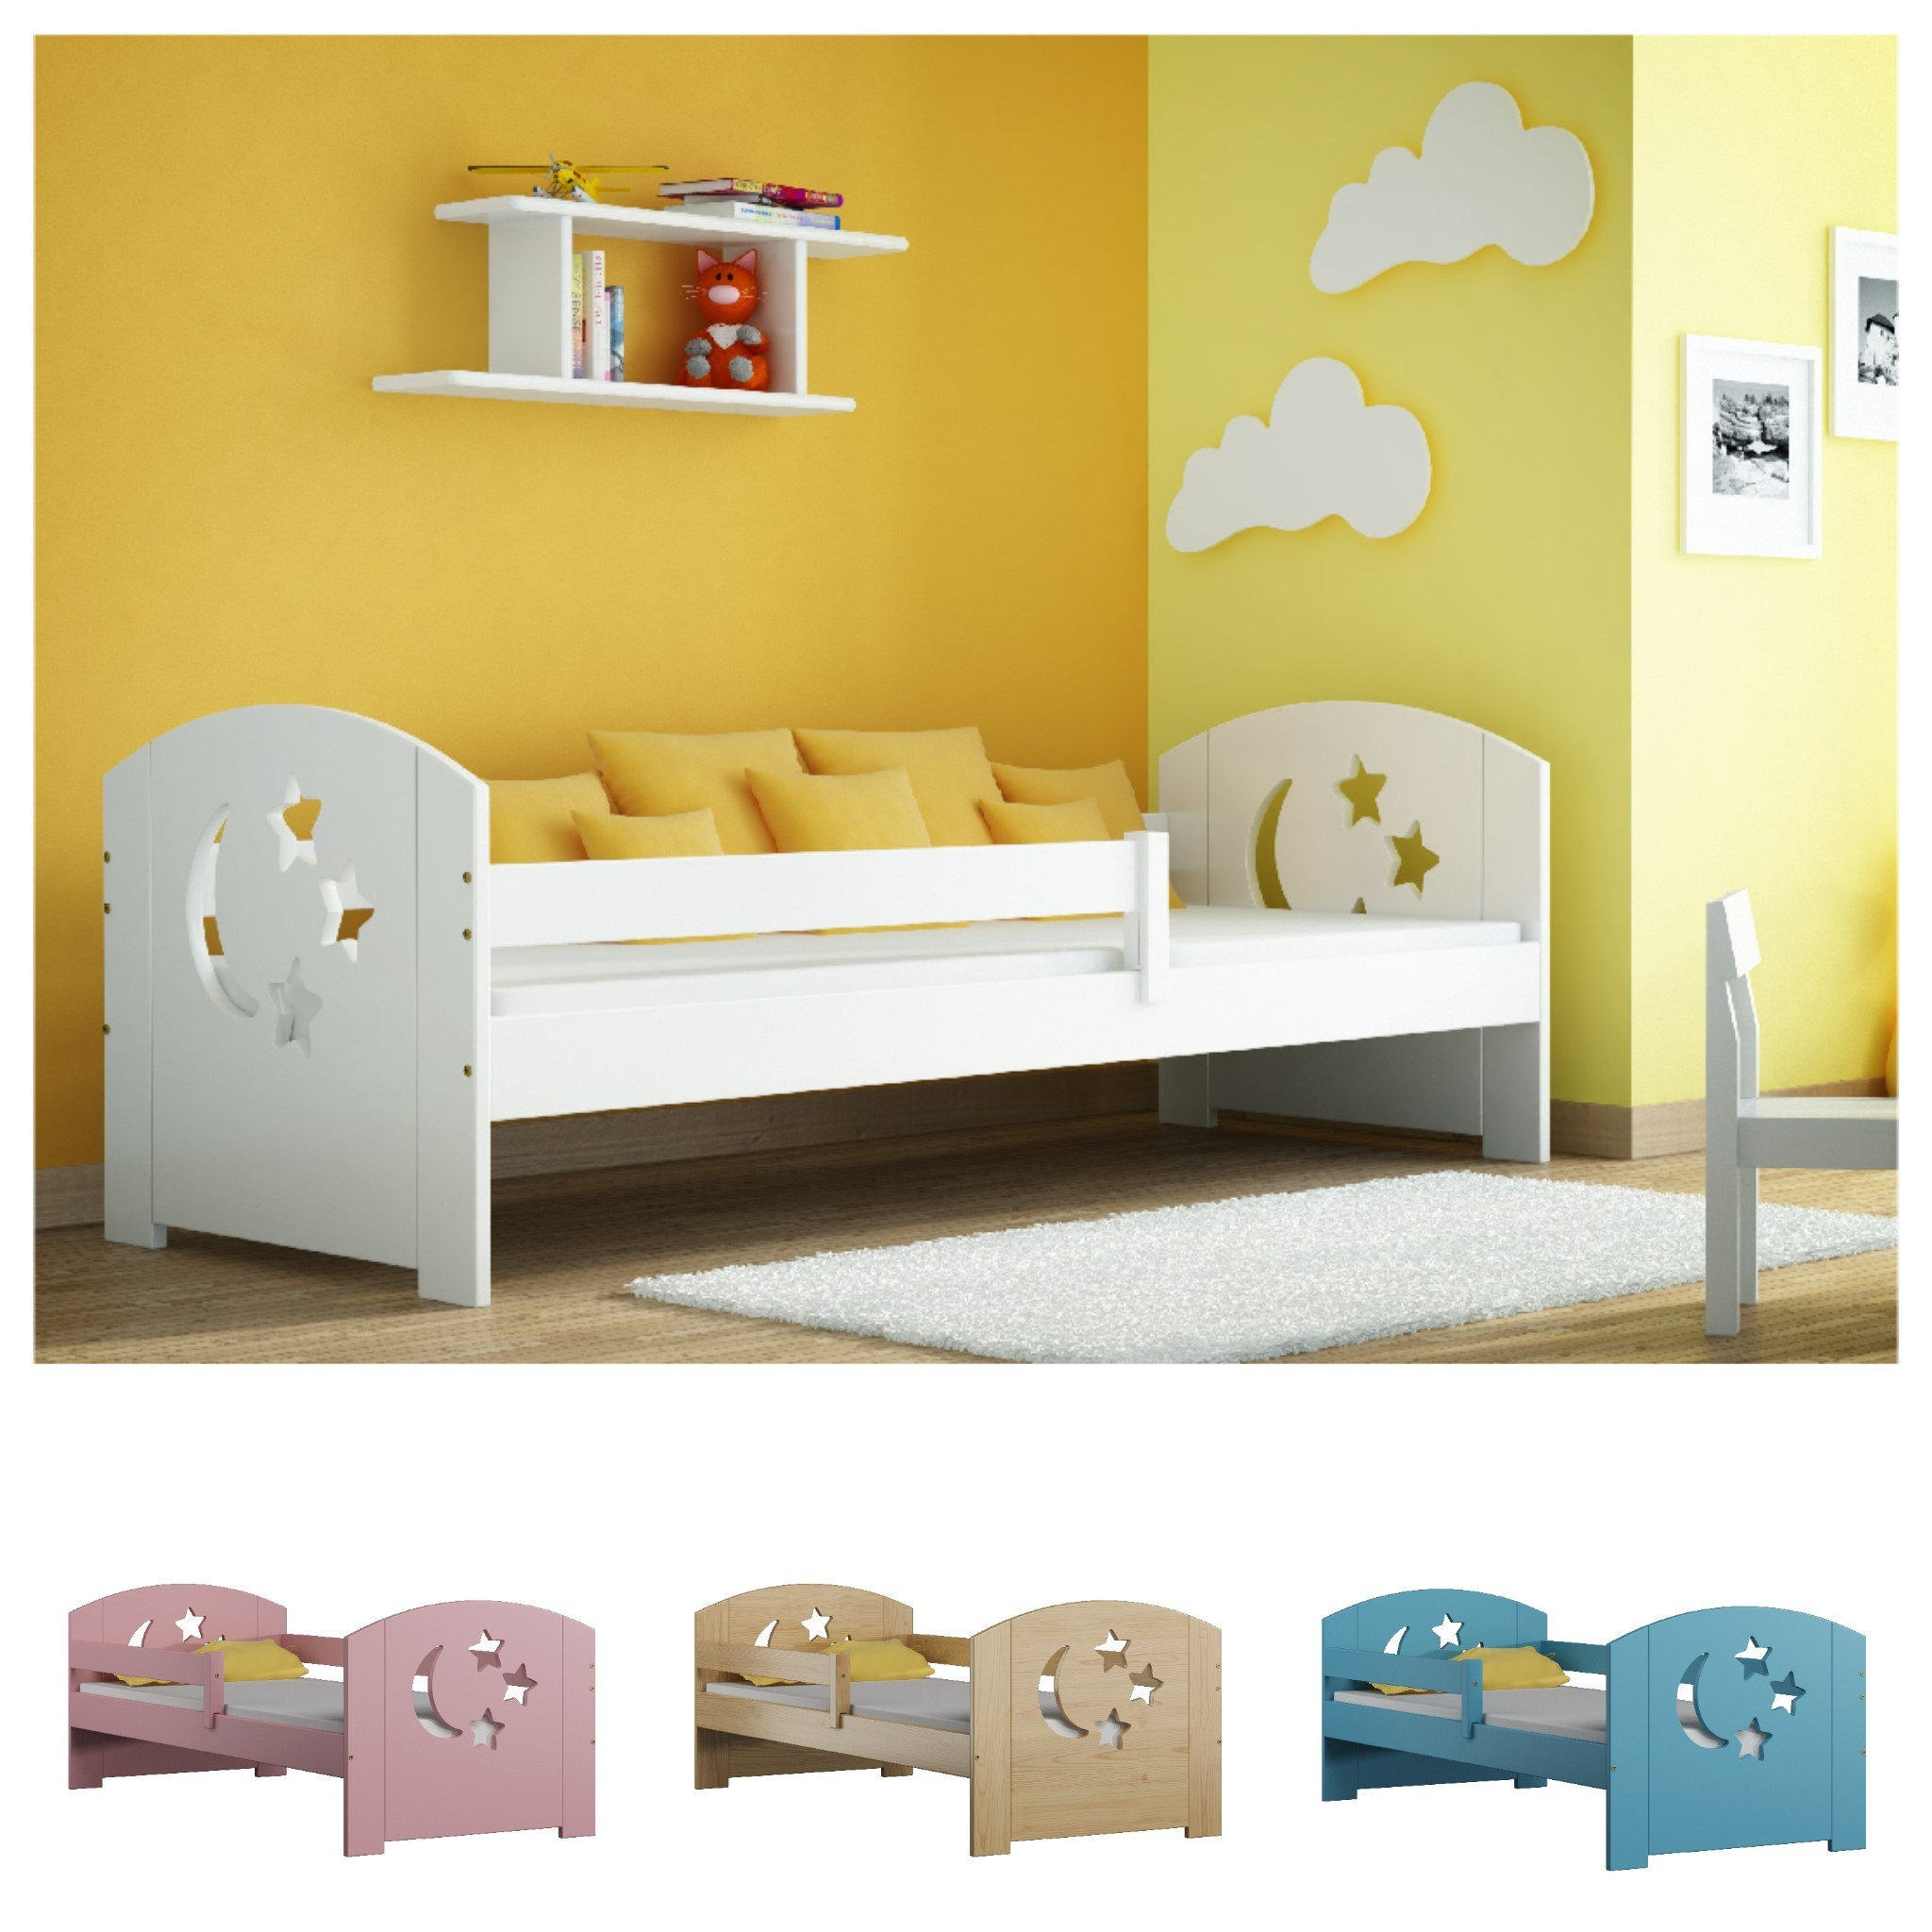 Cama de solteiro - Lily For Kids Children Toddler Junior